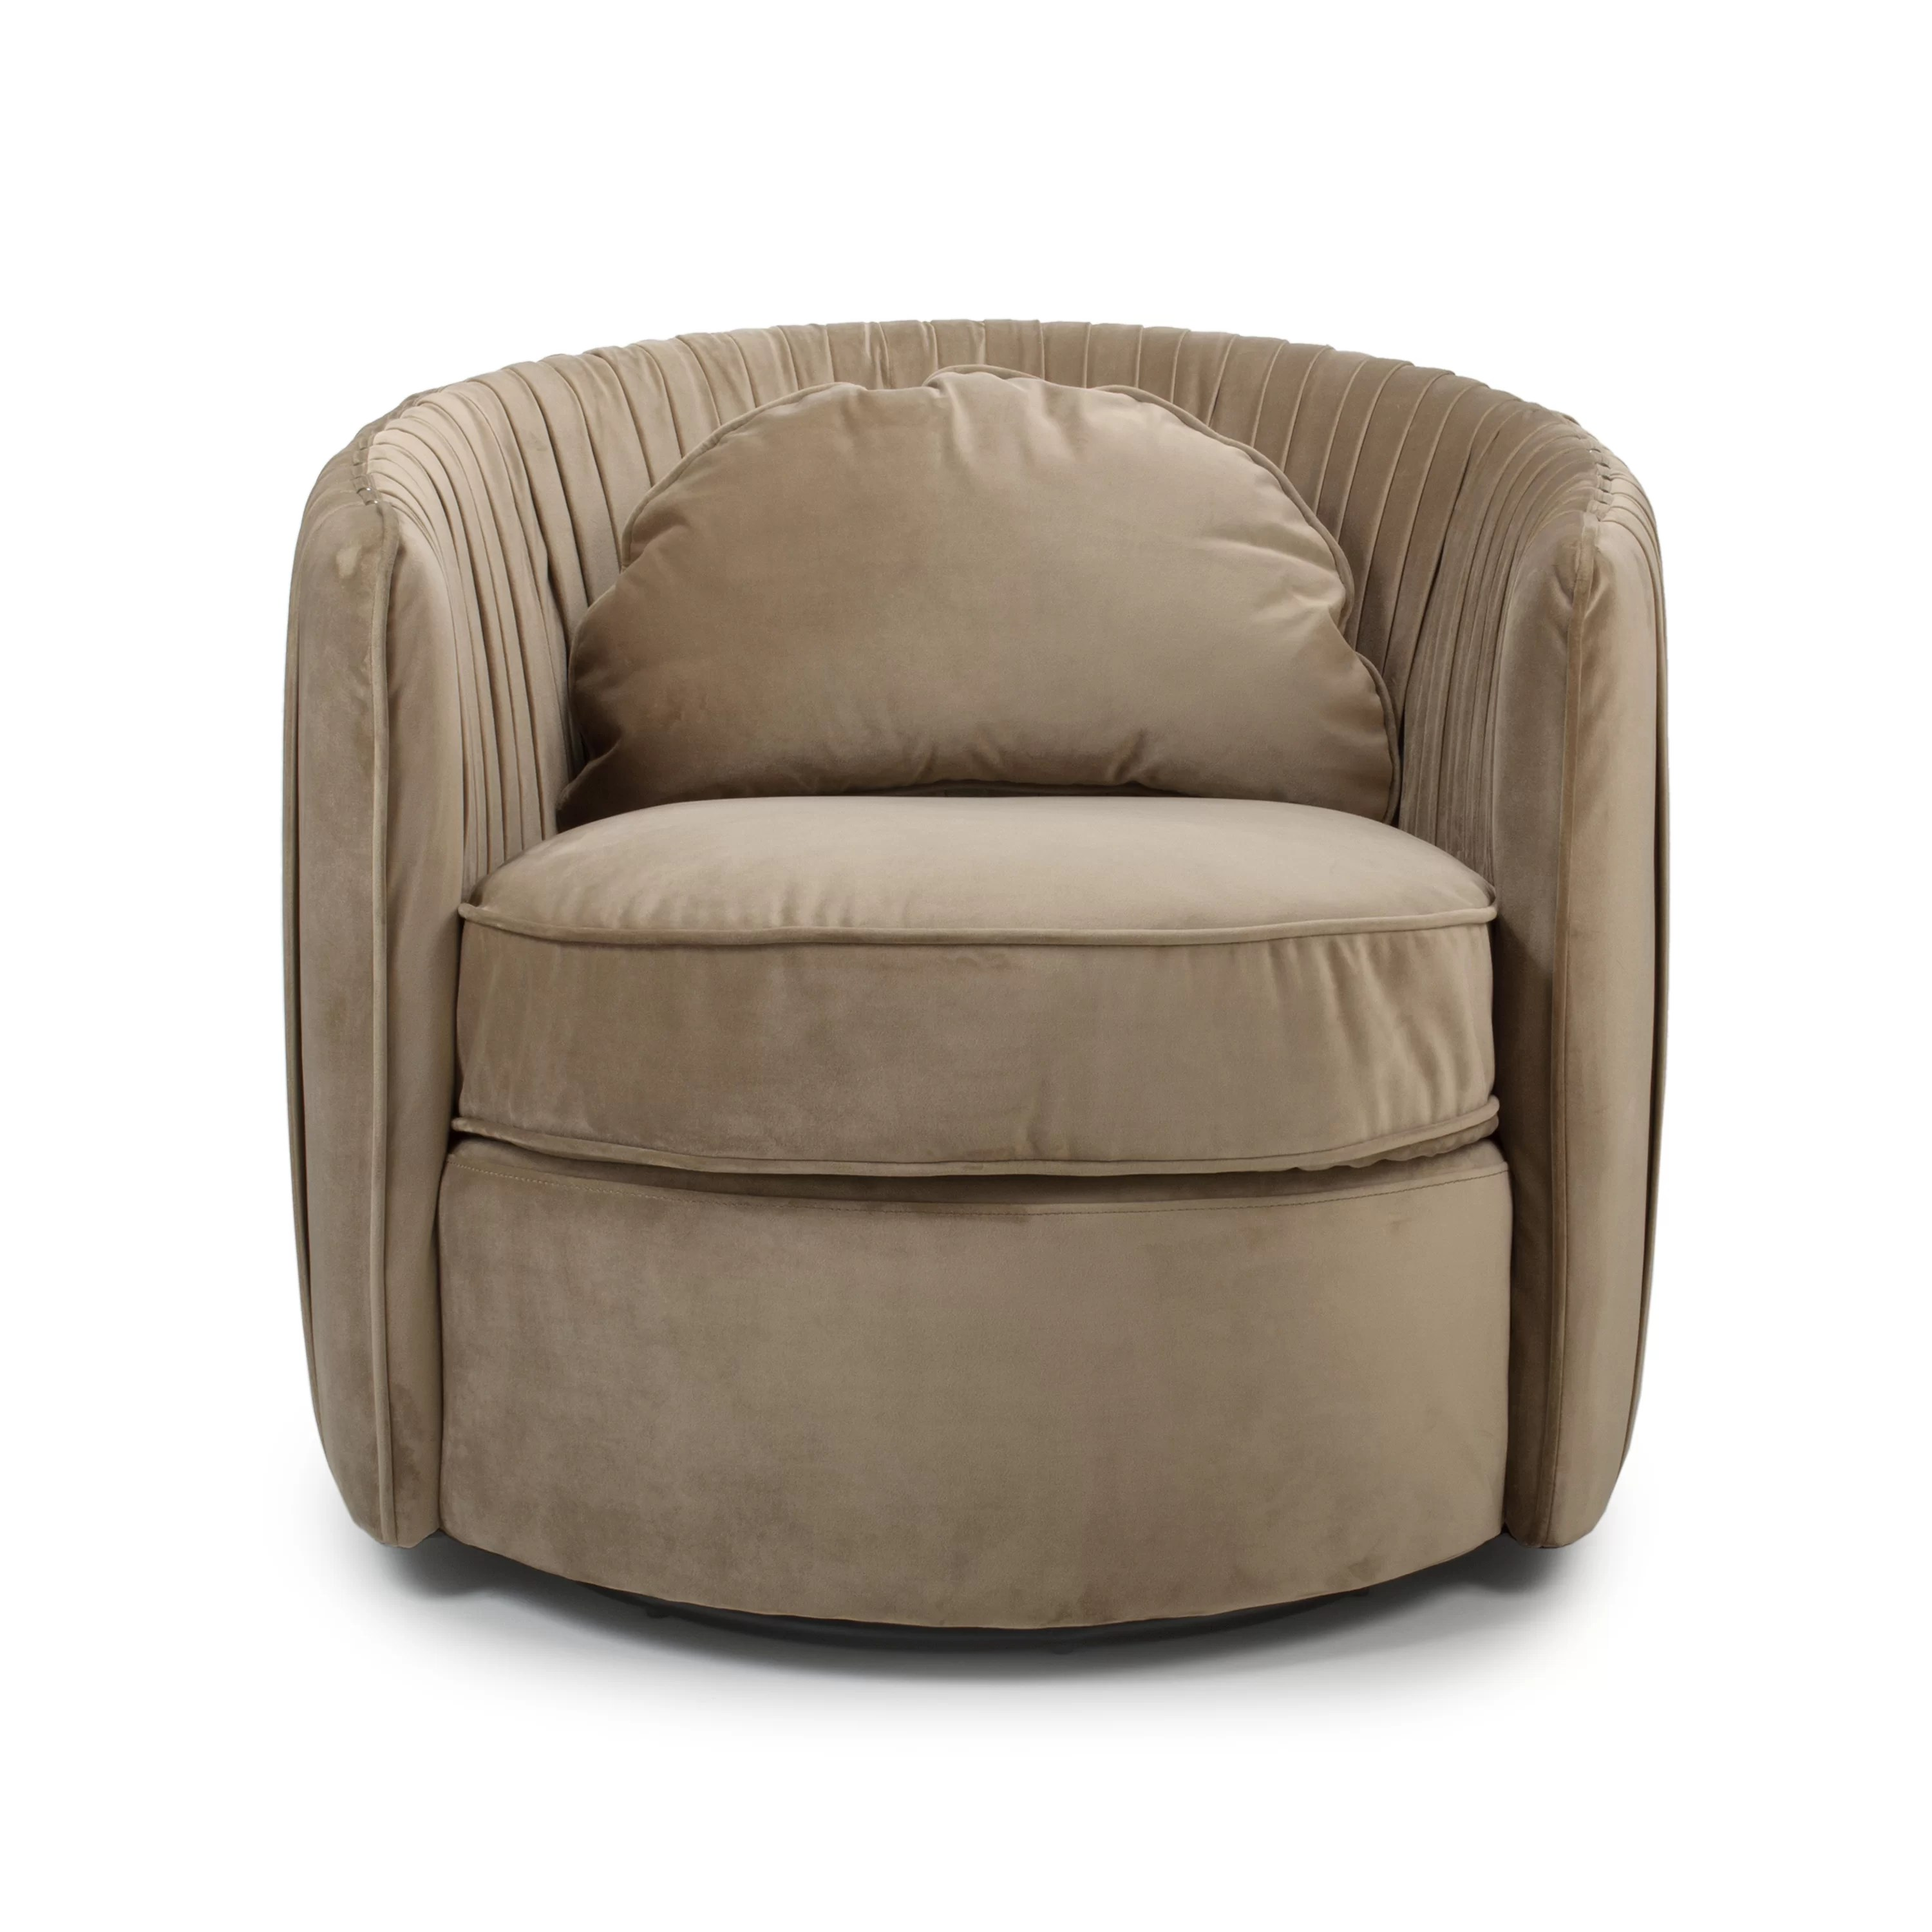 Swivel Tub Chair Maisie Swivel Tub Chair